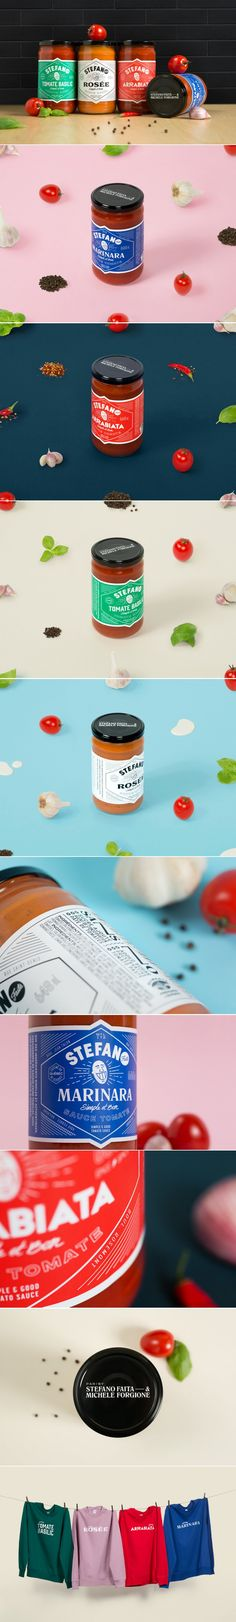 Stefano's Pasta Sauces Have a Well-Designed Look That Stand Out On the Shelves — The Dieline | Packaging & Branding Design & Innovation News